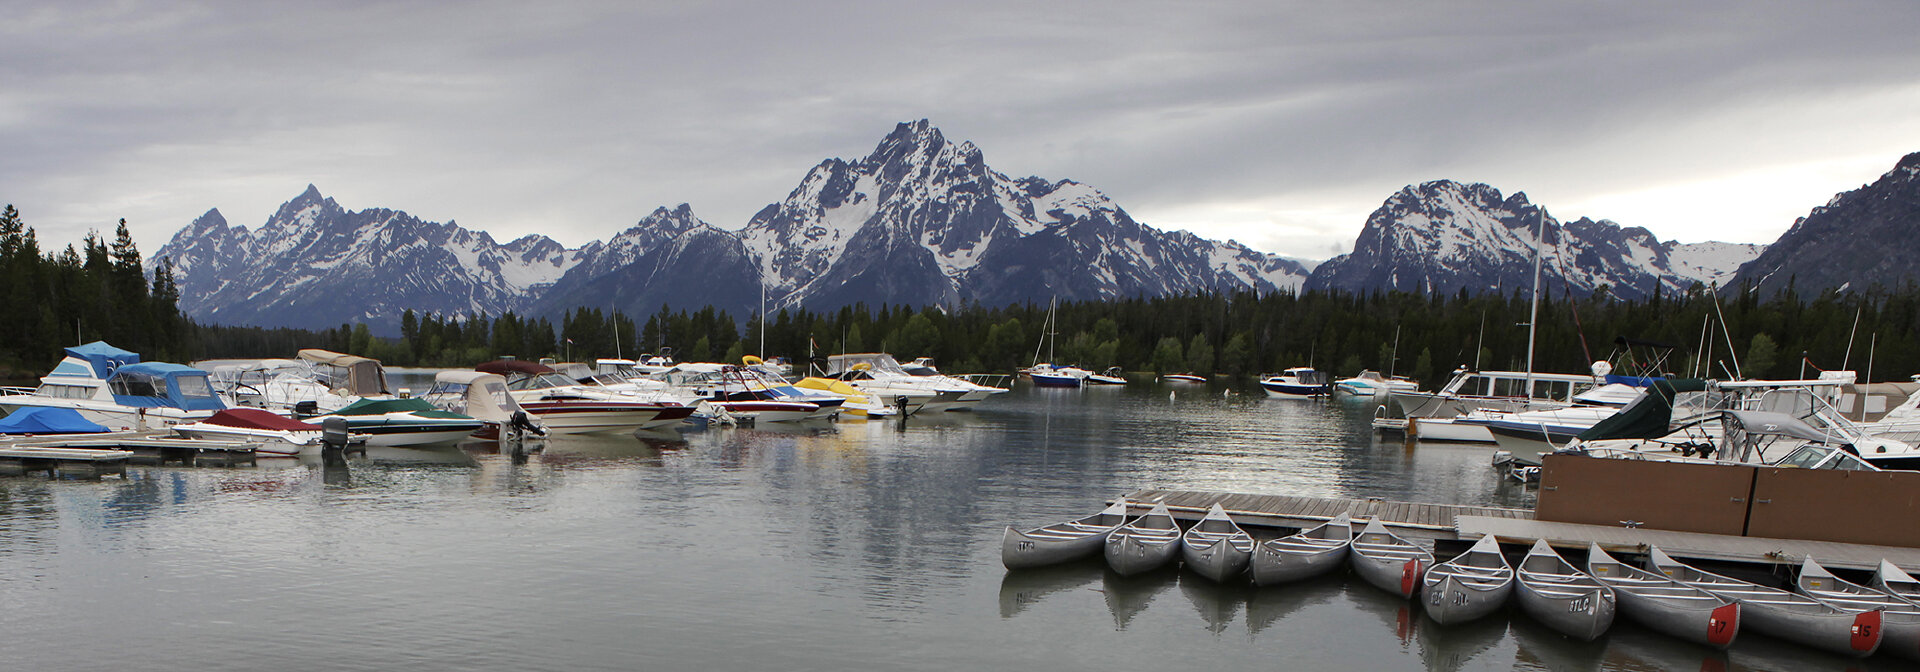 Alaska: The Inside Passage